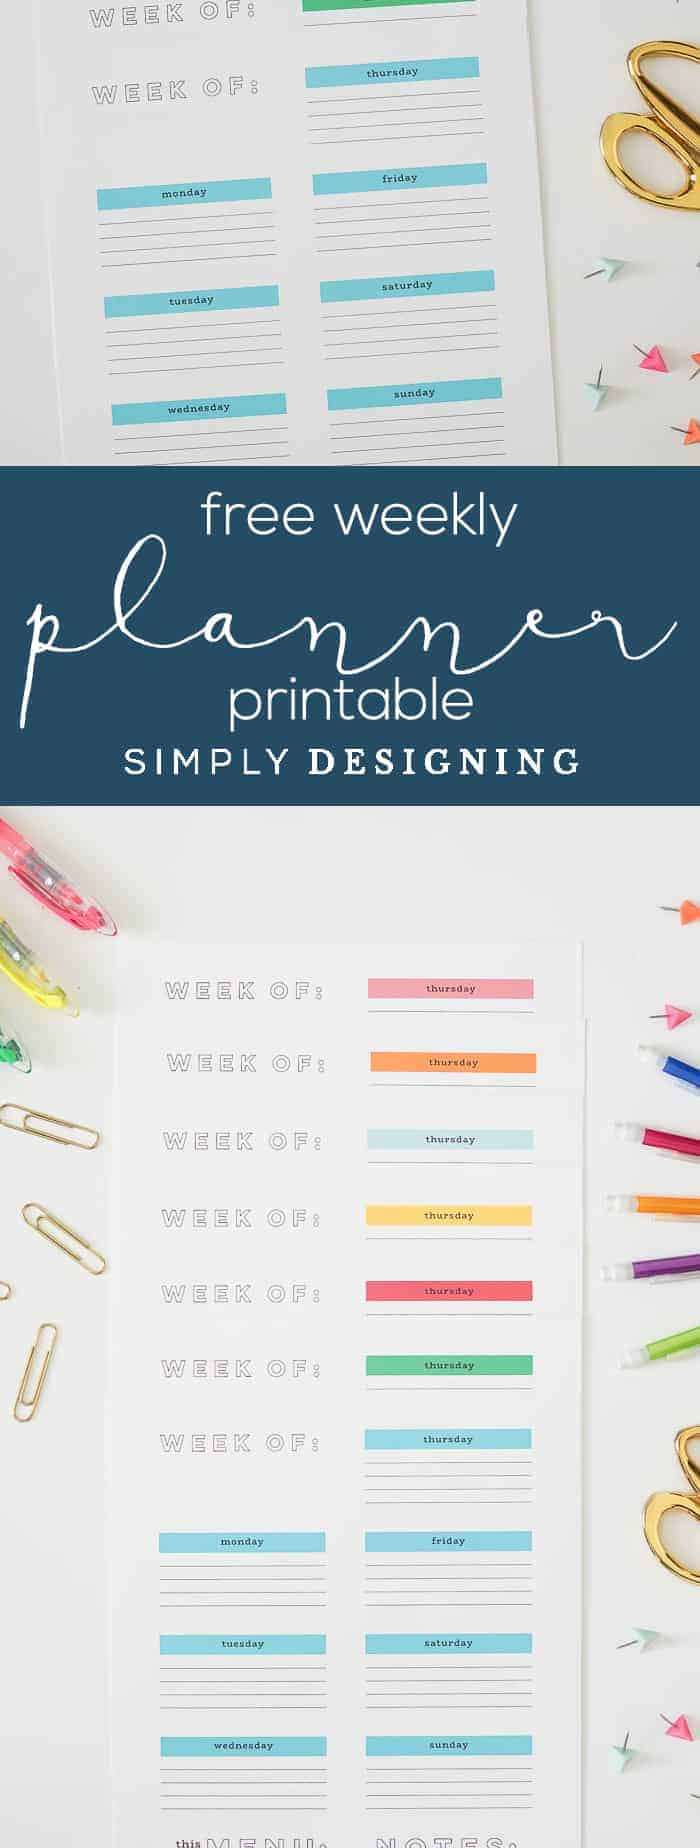 FREE Weekly Printable Planner - this printable weekly calendar is a great way to get organized and you can download it for free